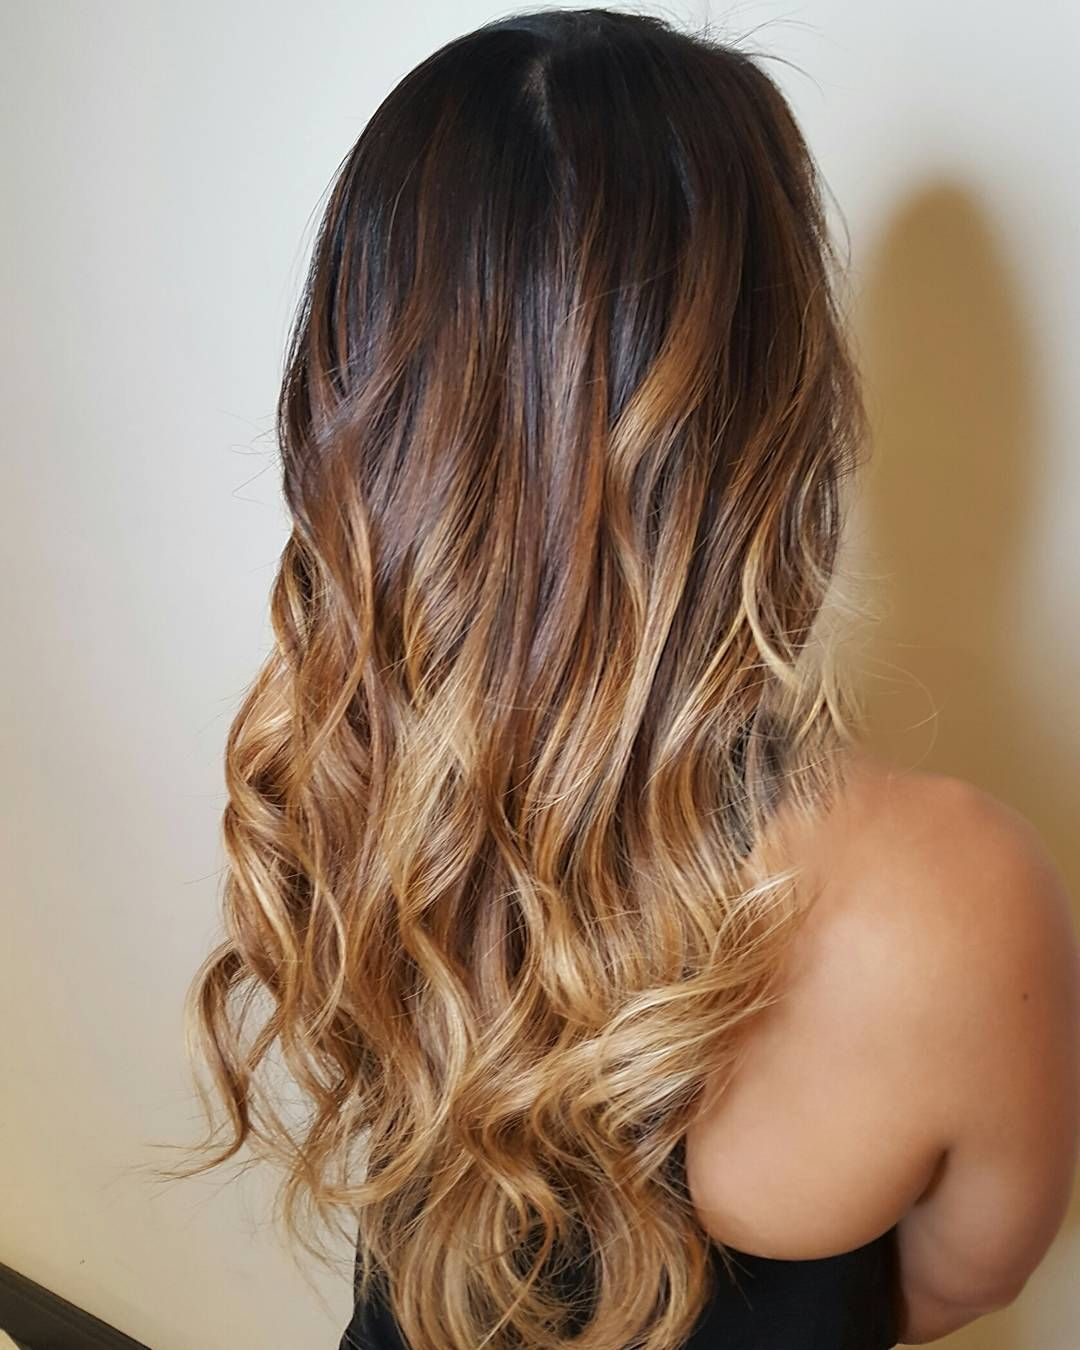 60 Trendy New Winter Fashion Styles: 60 Trendy Designs For Dark And Light Brown Hair With